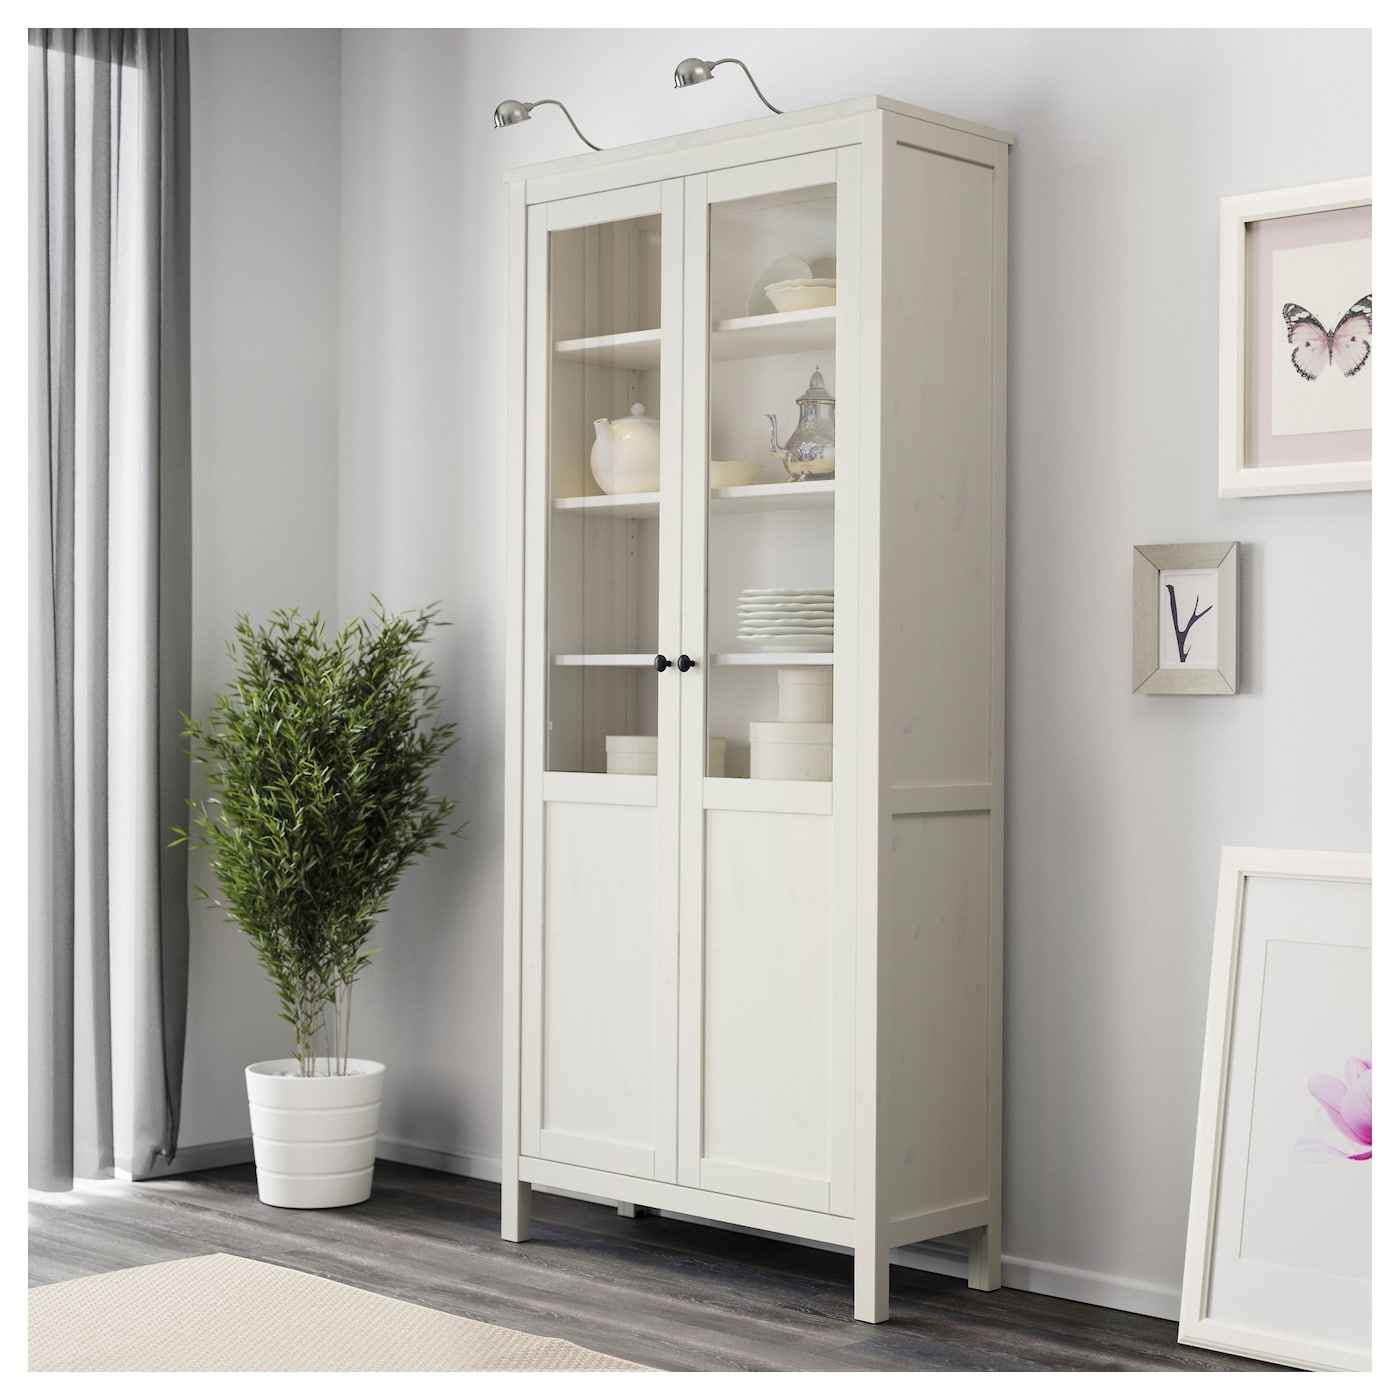 hemnes cabinet with panel glass door white stain 90x197 cm ikea. Black Bedroom Furniture Sets. Home Design Ideas